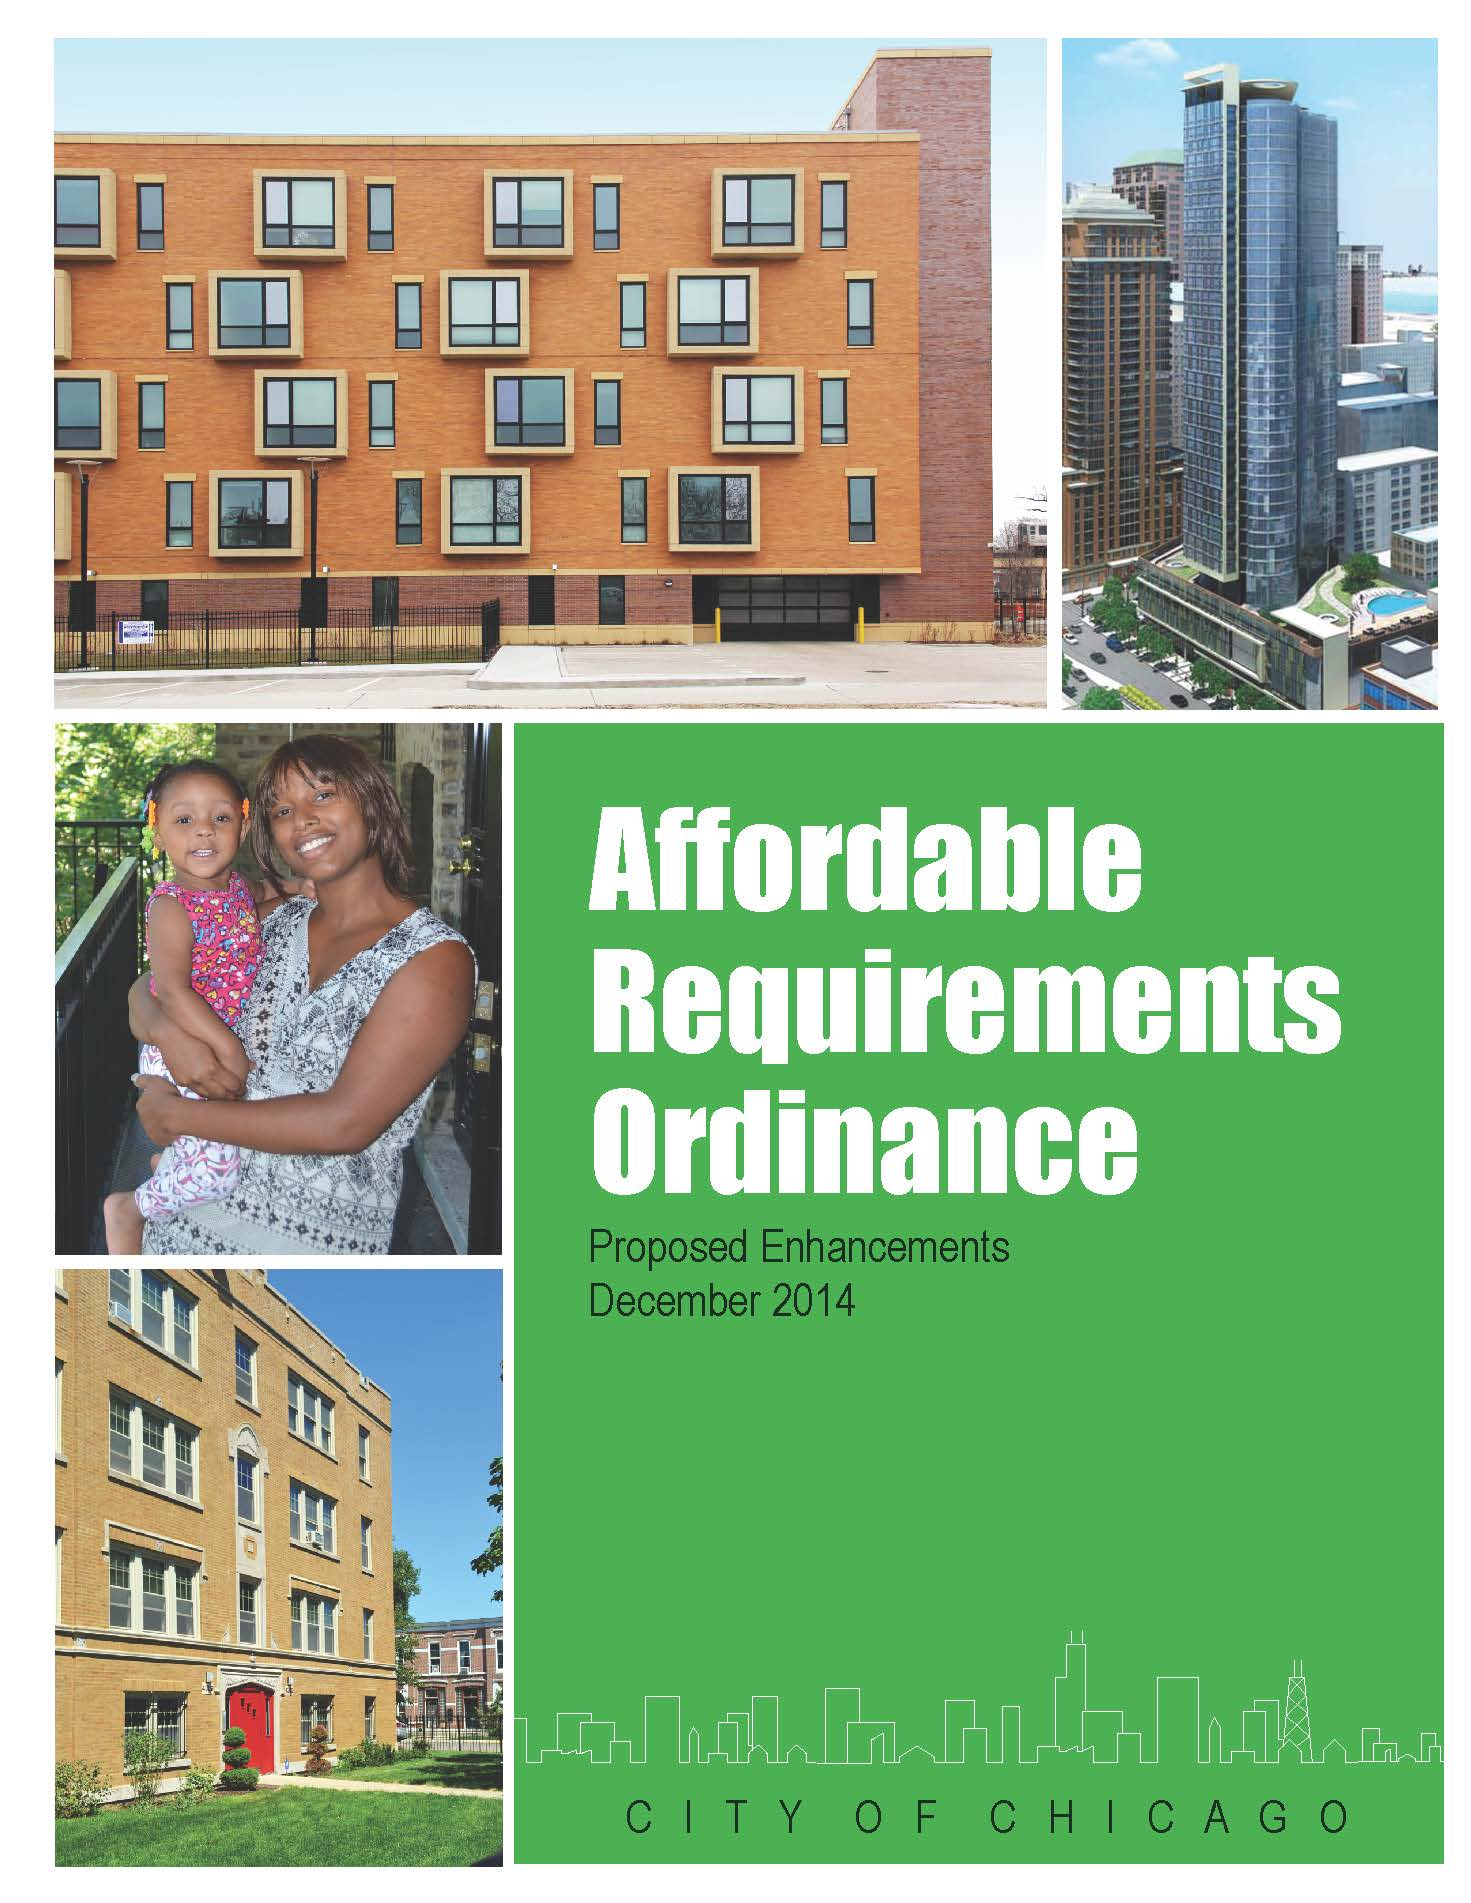 Affordable Requirements Ordinance